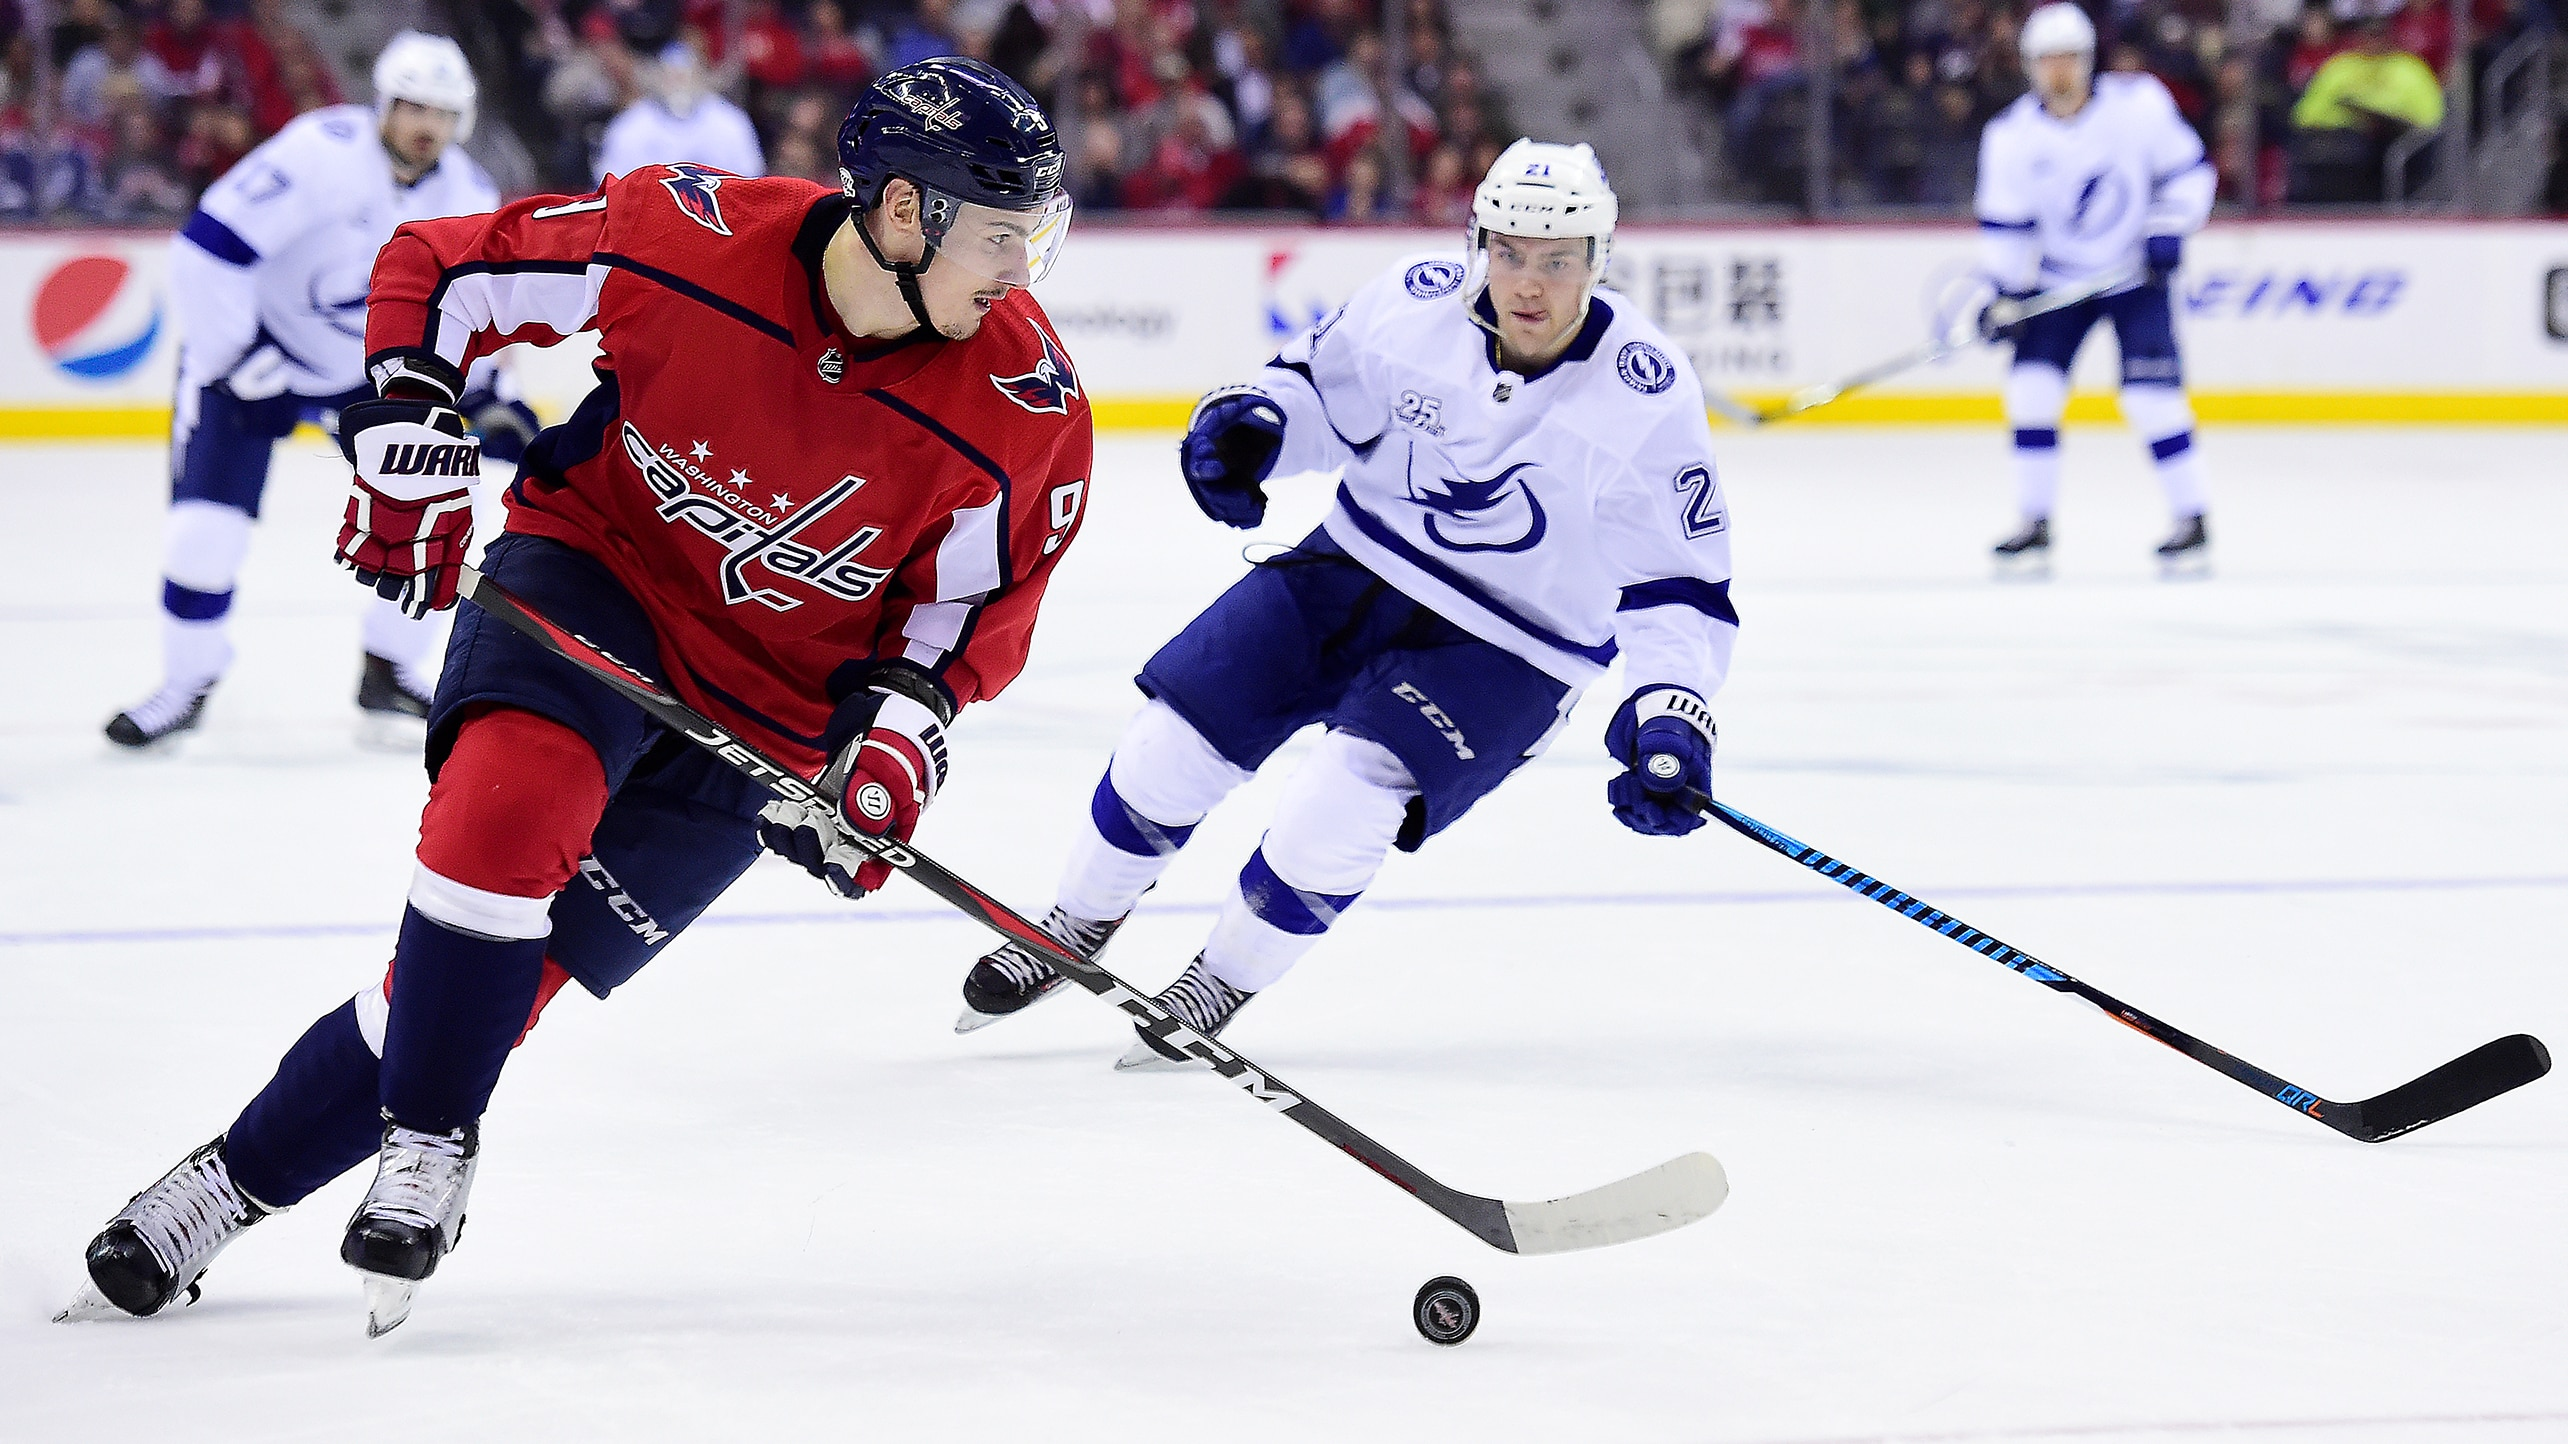 Dmitry-orlov-tampa-bay-lightning-game-3-skate-shavings